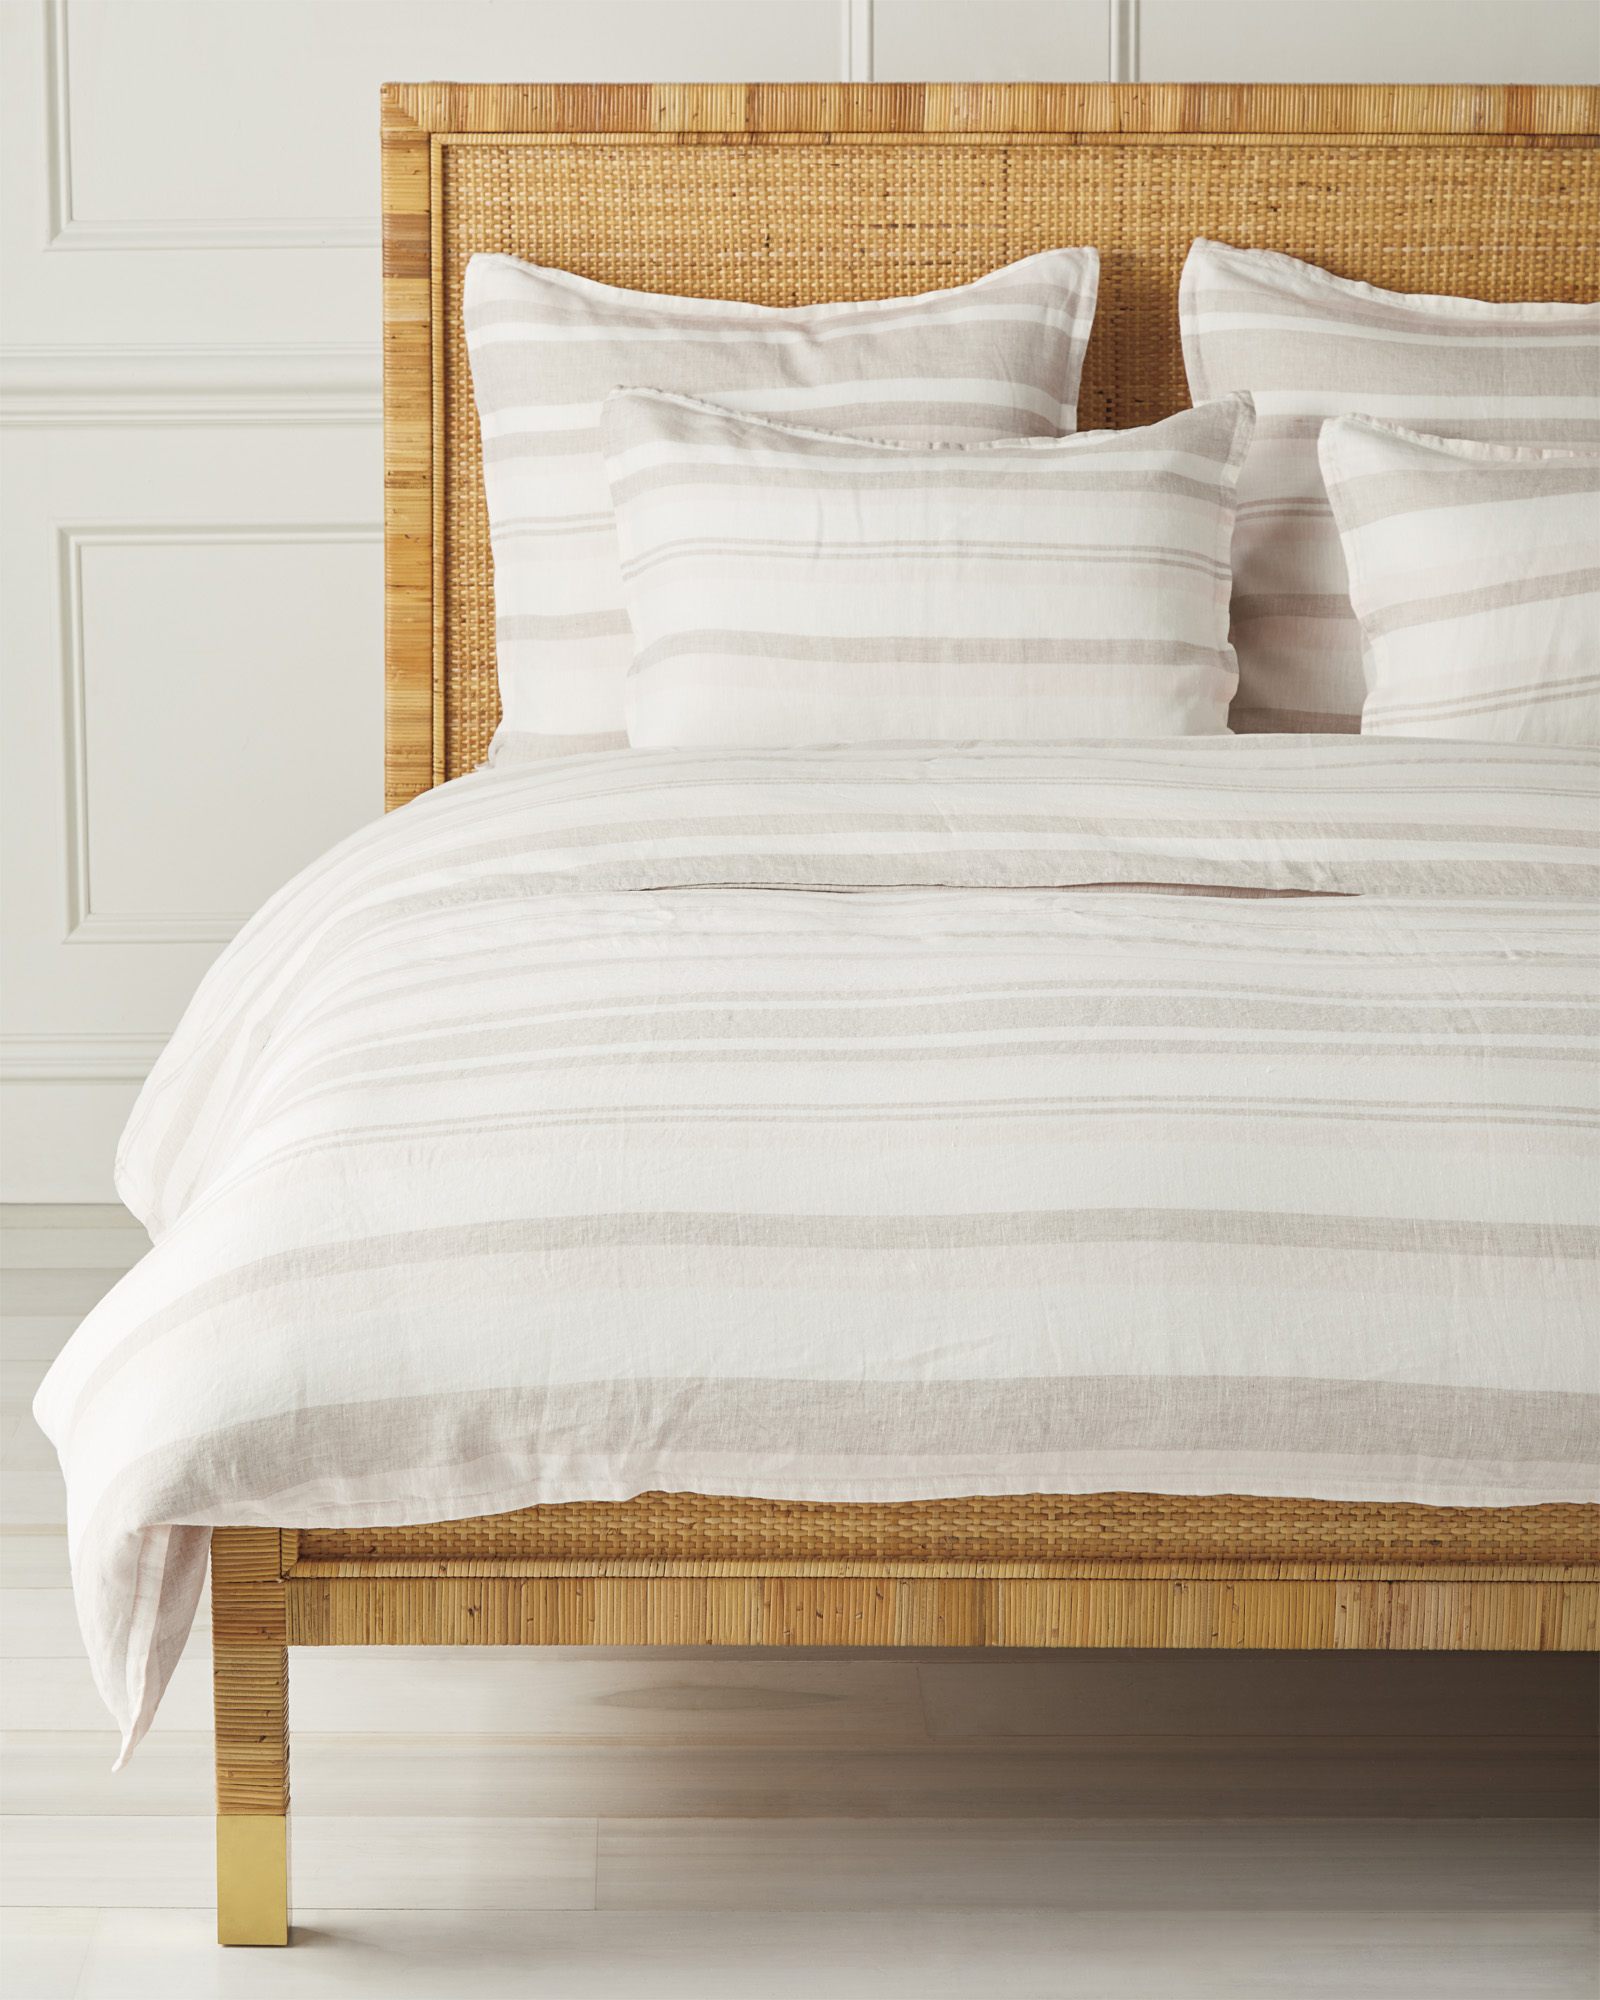 Seabright Linen Duvet Cover, Flax/Pink Sand